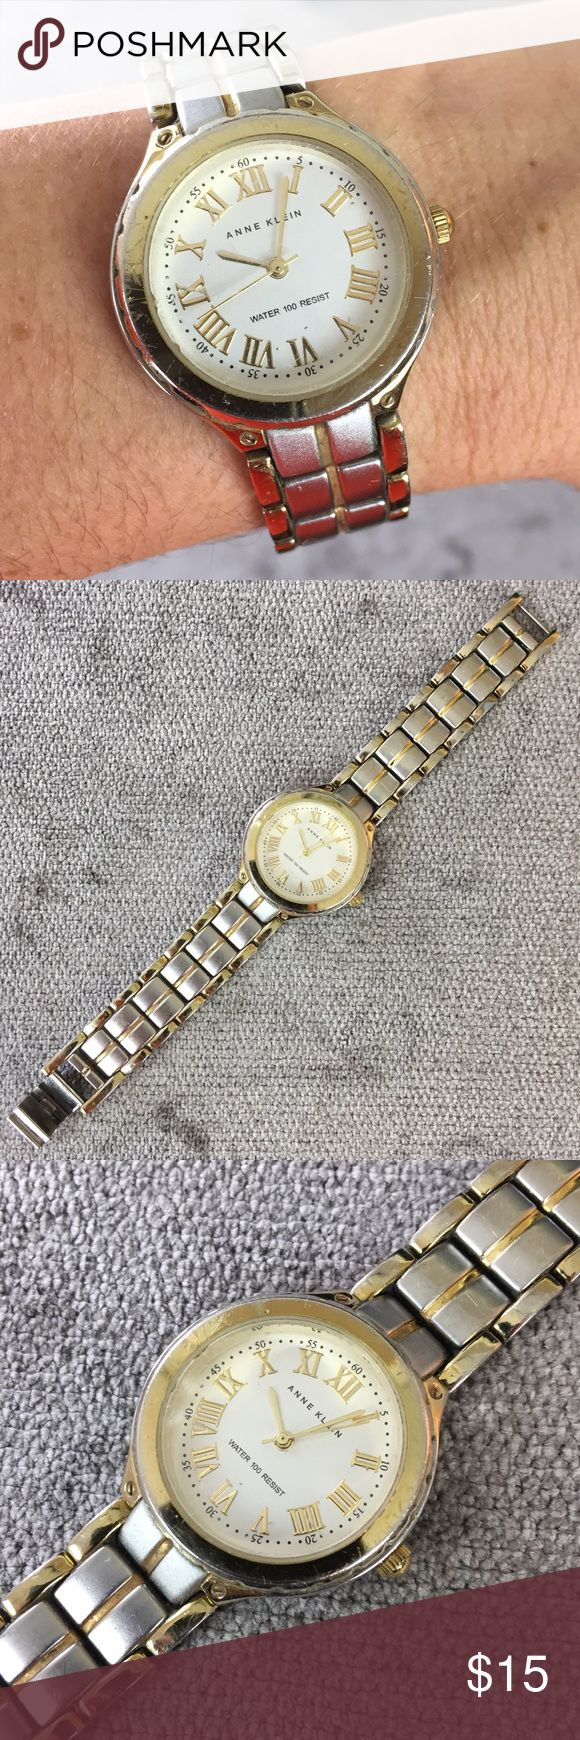 "Anne Klein Ladies Fashion Watch Roman Numerals Classic silver watch by Anne Klein (Skagen). Water resistant to 100 feet. Round face with roman numerals. Fits my wrist that is 6"". May need battery.  *Some of the finish on the underside of the band is coming off as seen in photos but doesn't affect the watches' appearance when wearing. Anne Klein Accessories Watches"